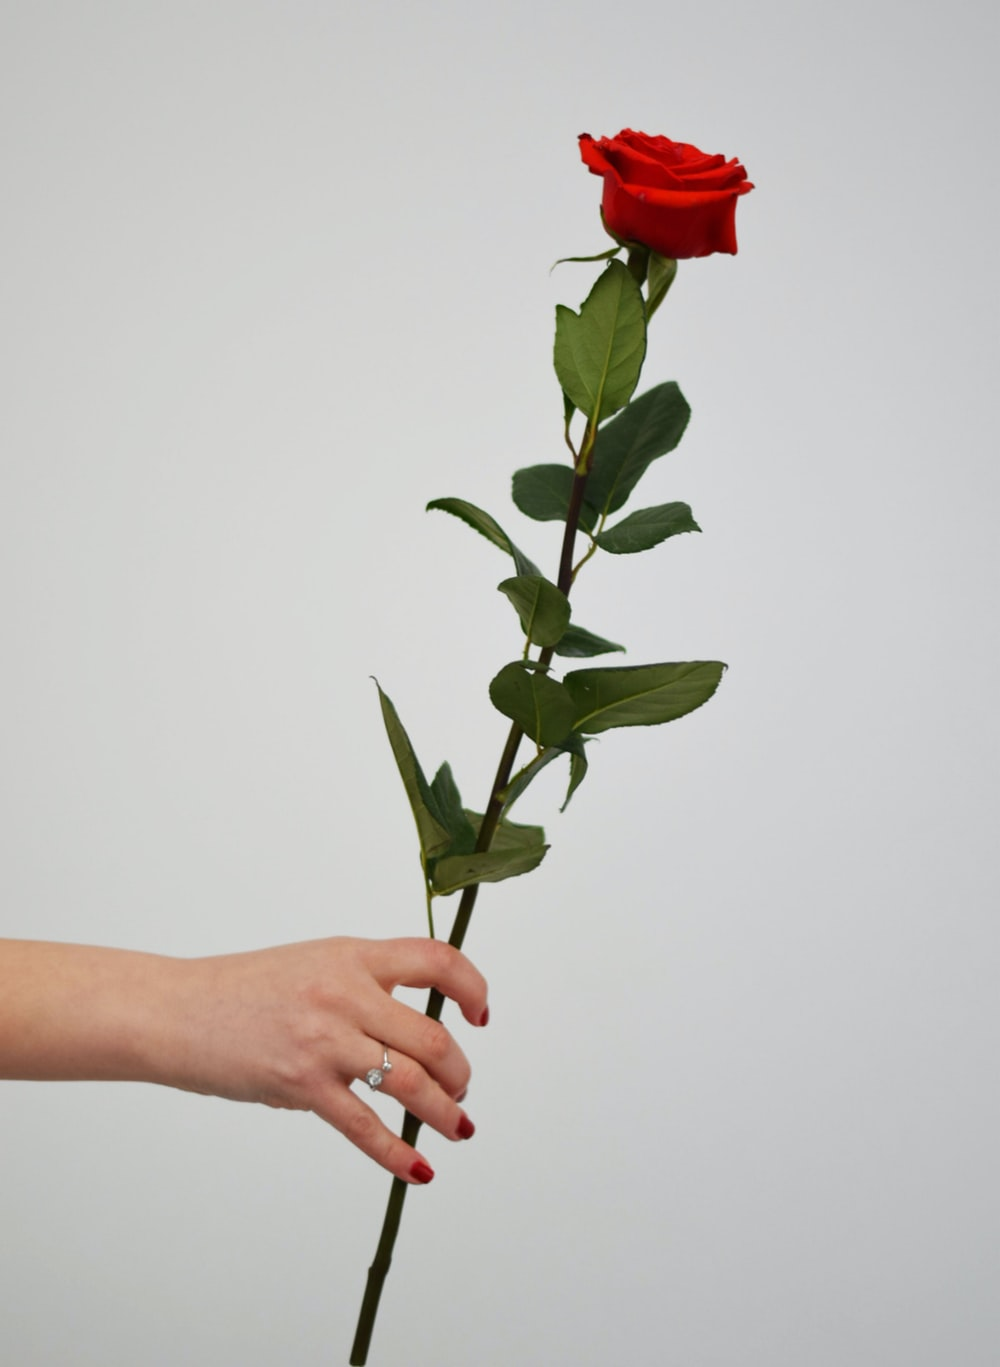 person holding red rose with green leaves